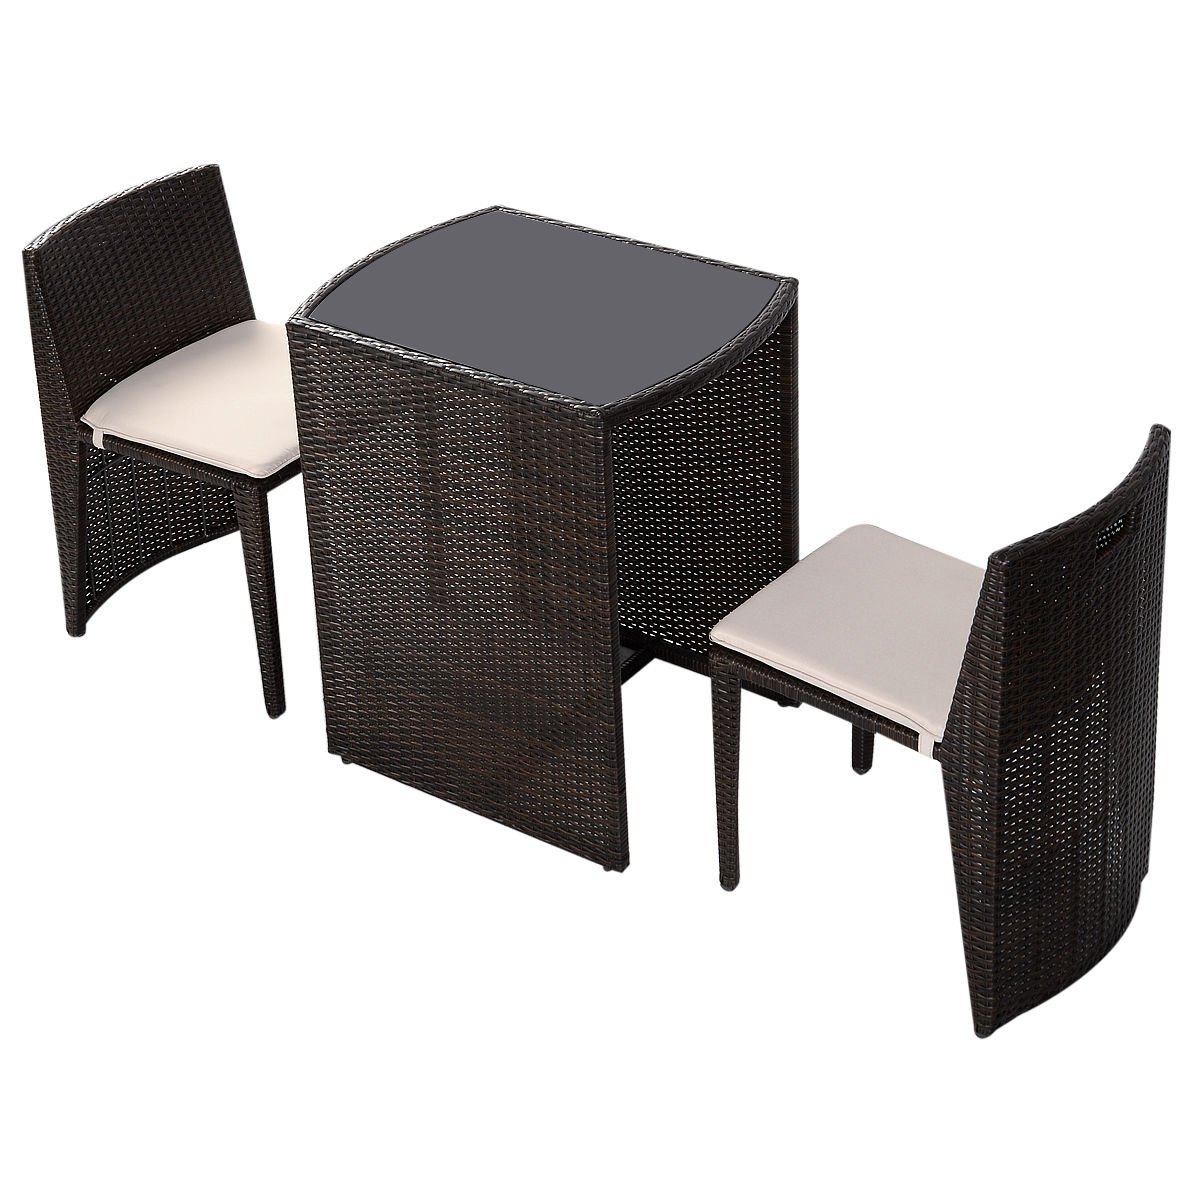 ssitg gartenm bel rattan lounge 3er set polyrattan sitzgruppe rattanm bel garnitur g nstig. Black Bedroom Furniture Sets. Home Design Ideas